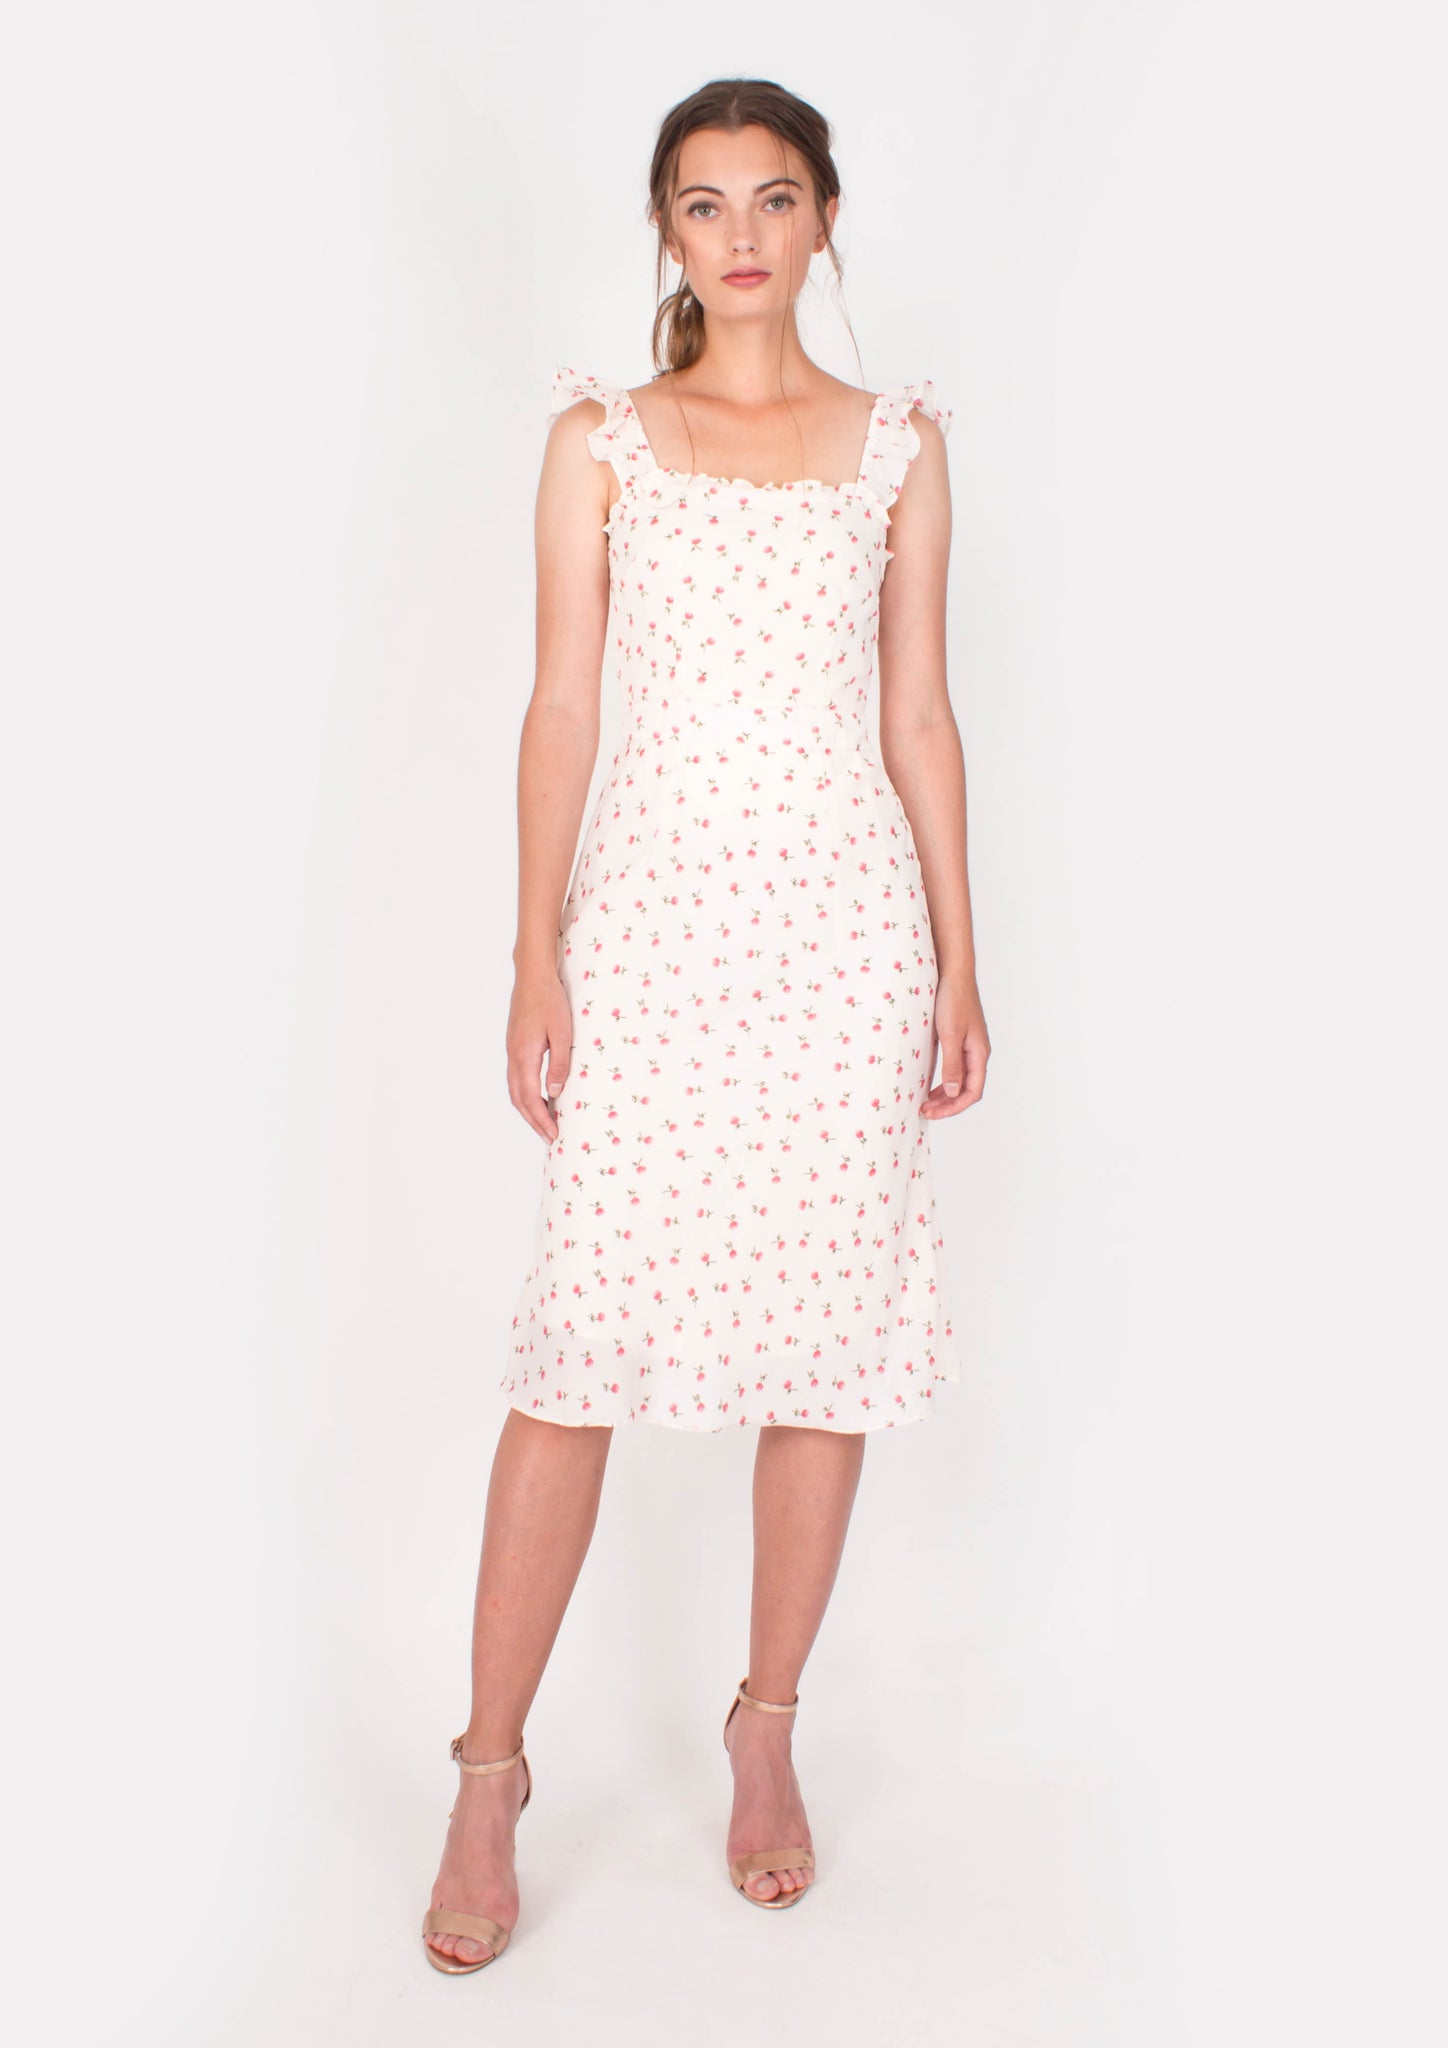 Sanguine Midi Dress (White) - Moxie